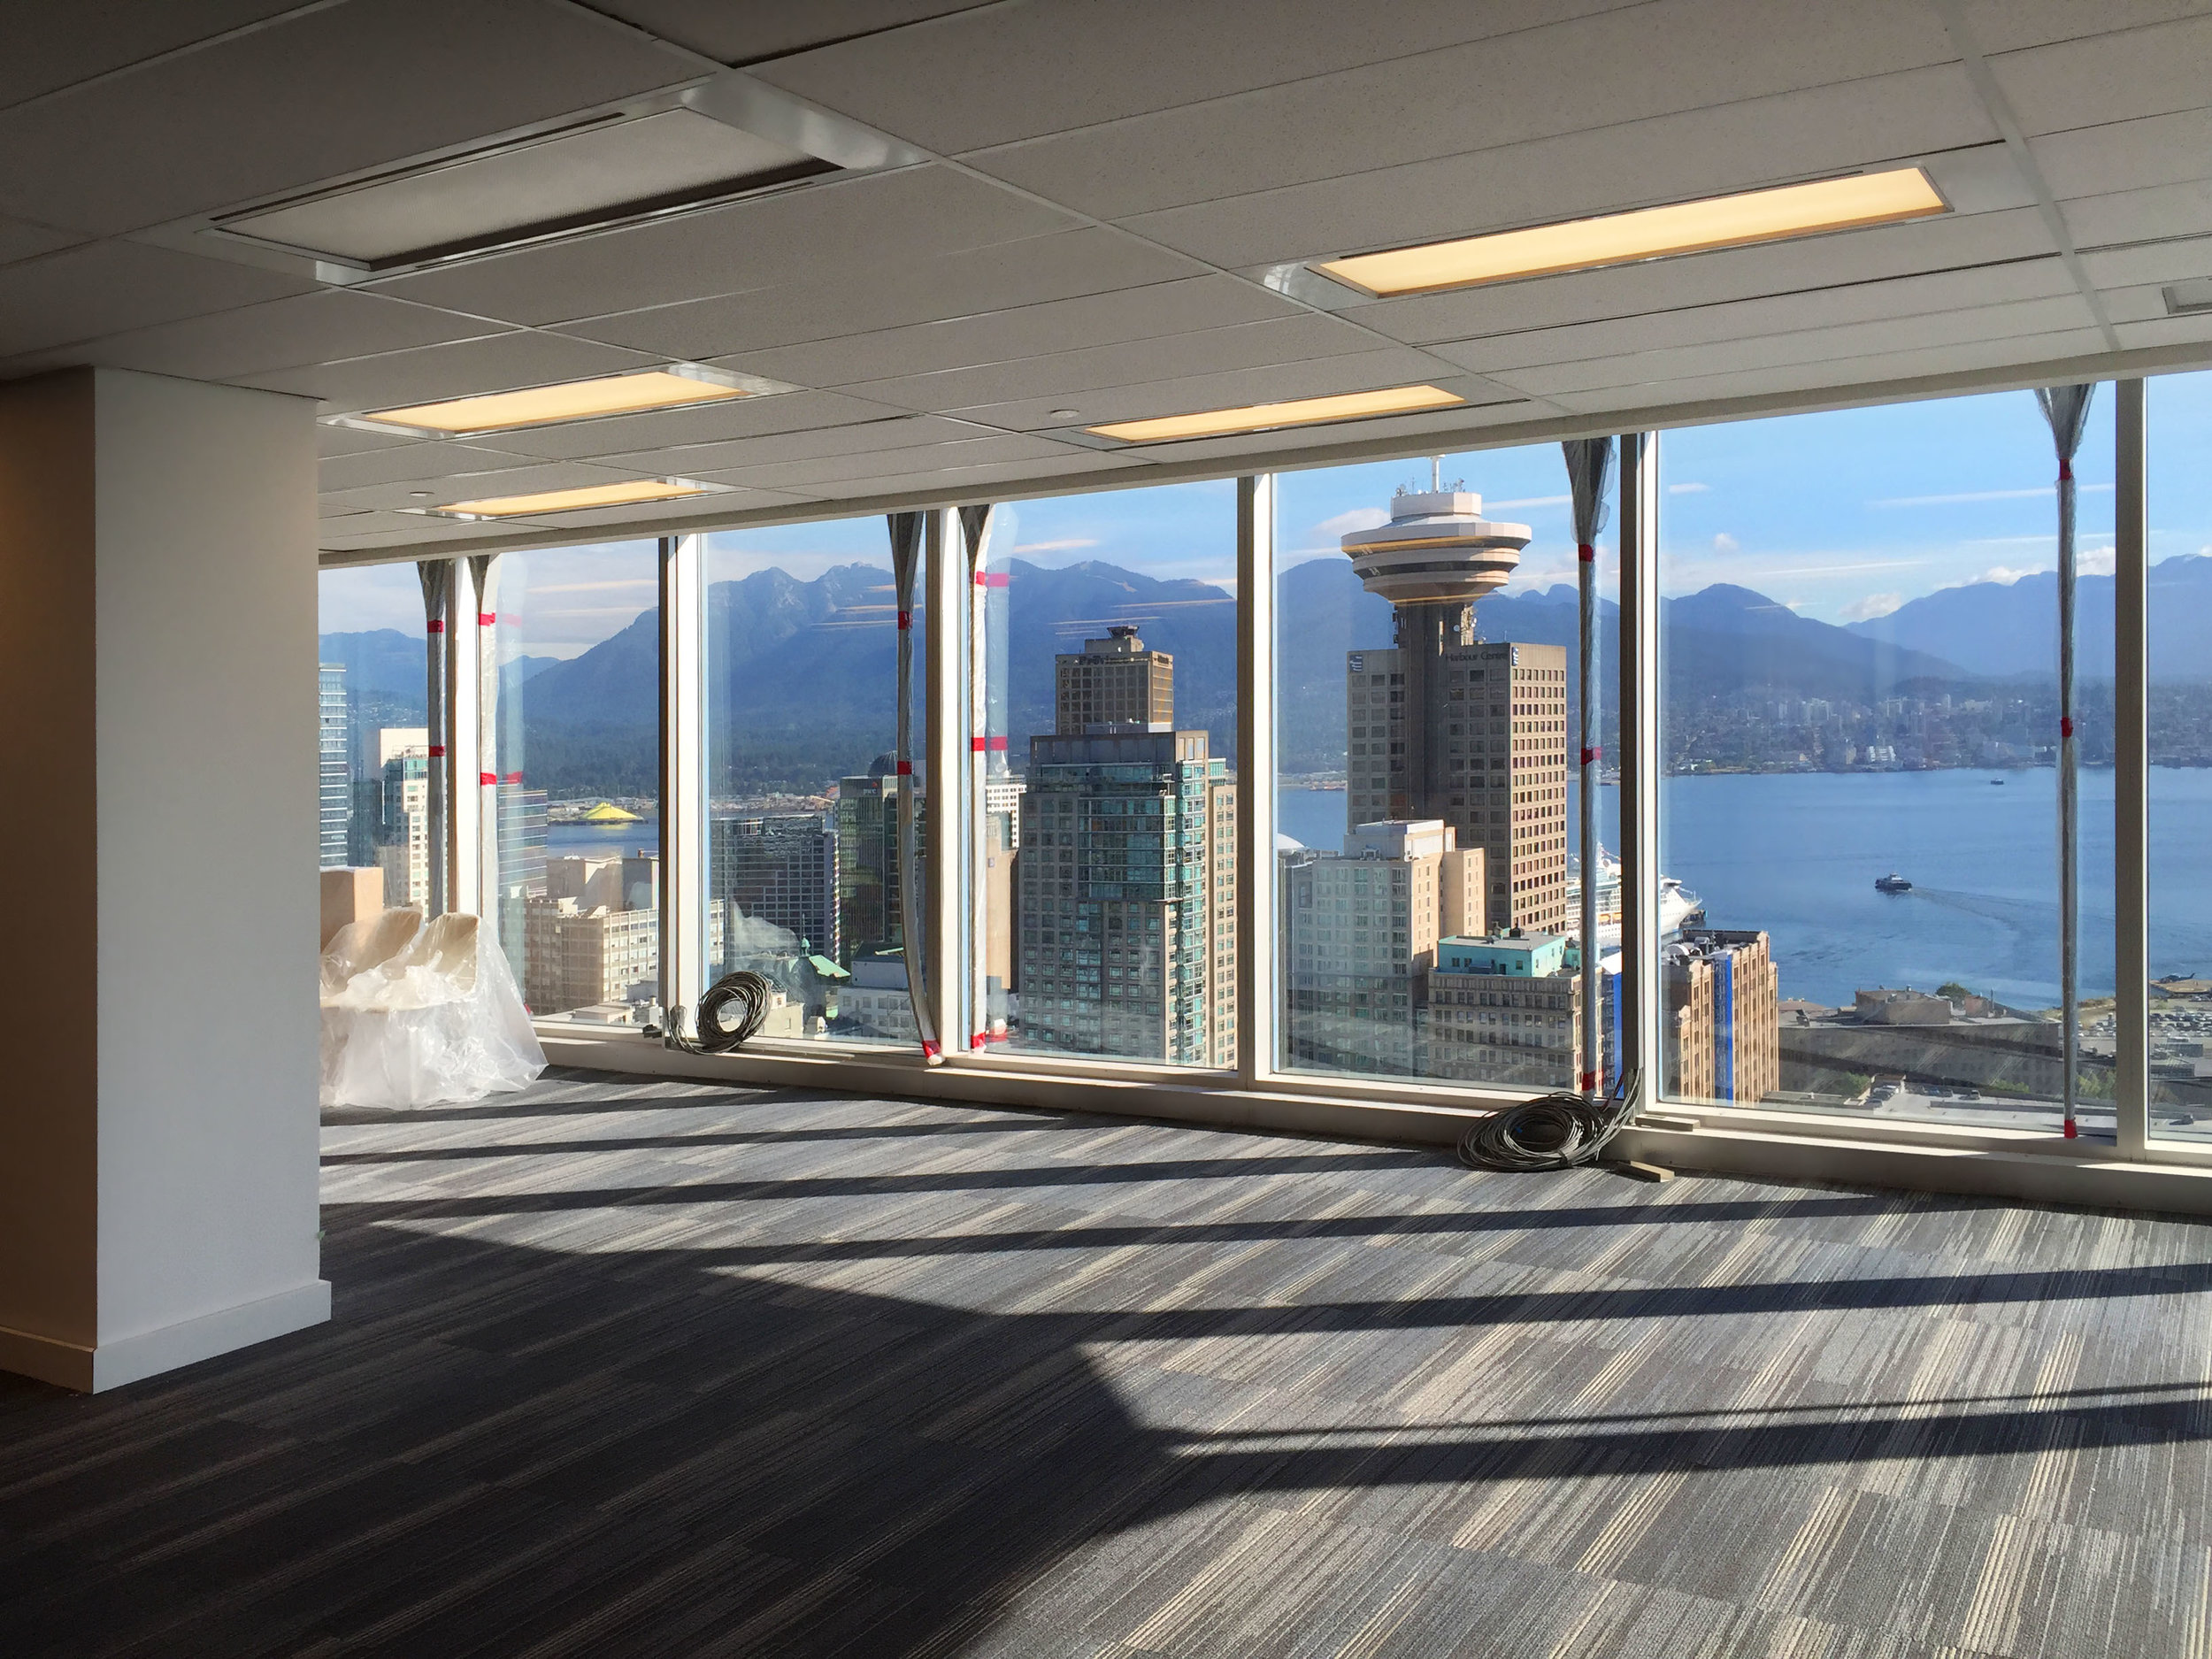 This build took place during the gorgeous springtime in Vancouver, and offered some stellar views of downtown and Burrard Inlet.